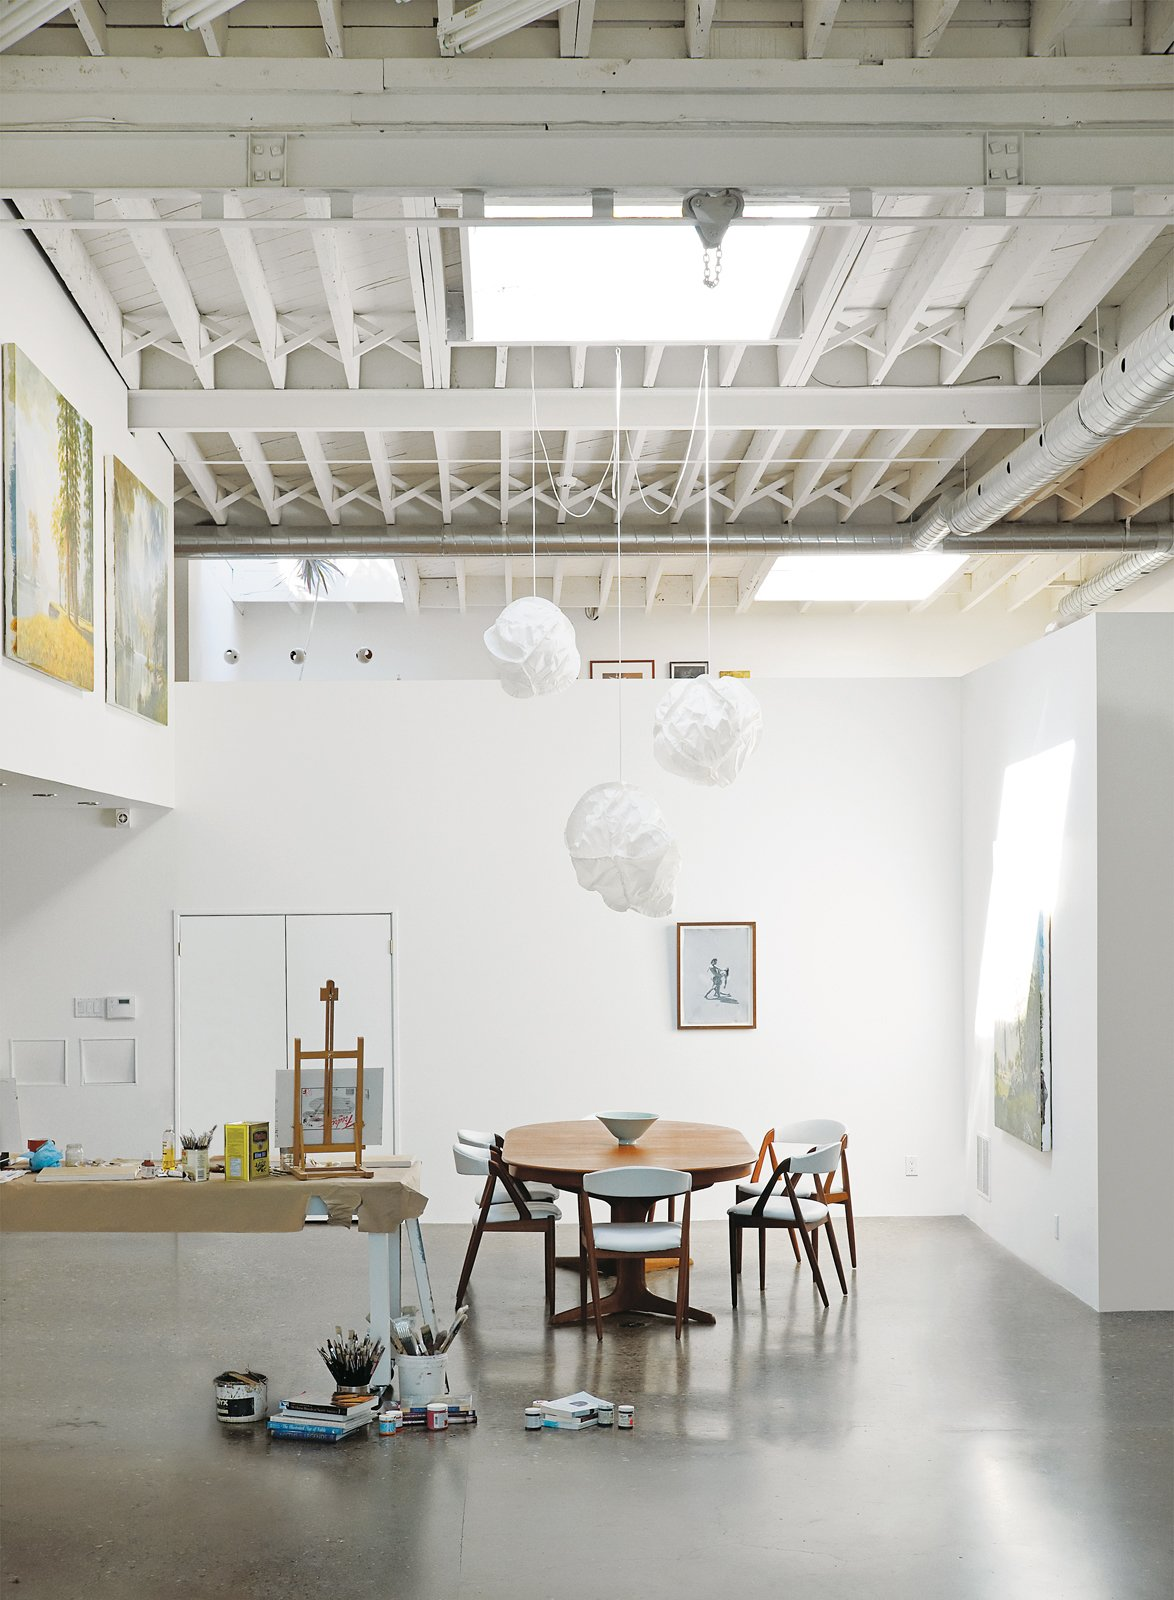 """Dining Room, Chair, Table, Pendant Lighting, and Concrete Floor Inside, white paint lightens up the middle of the building. A vintage Danish dining set and Cloud pendants by Frank Gehry for Vitra define the dining area.  Search """"classic danish nesting tables set"""" from An Art Studio That Would Make Picasso Jealous"""